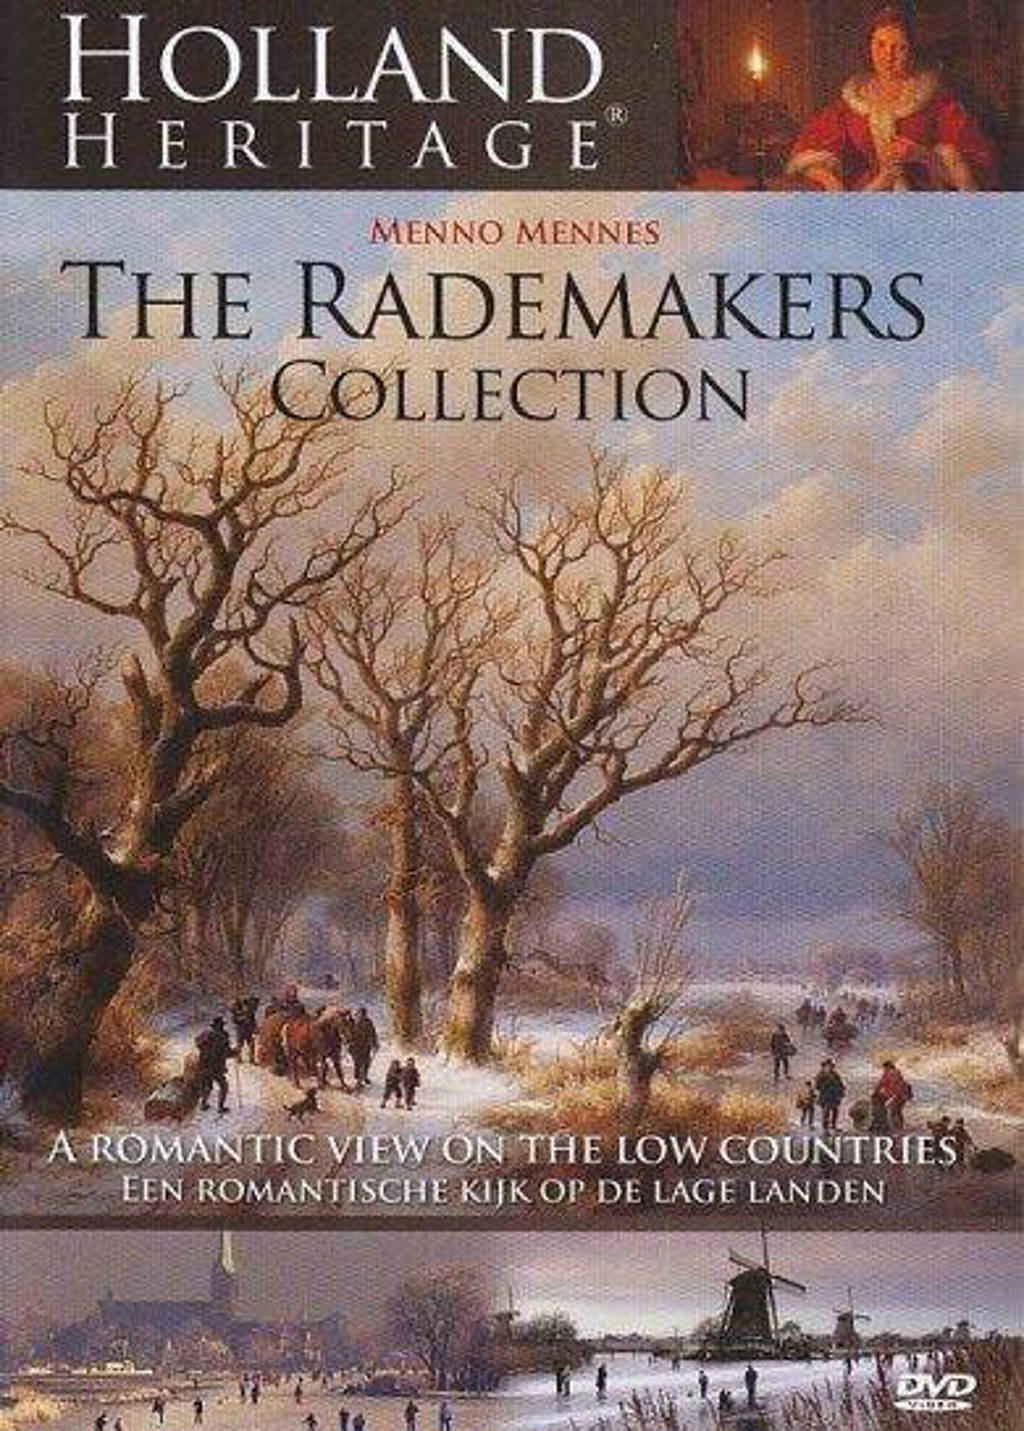 Holland heritage - The Rademakers collection (DVD)